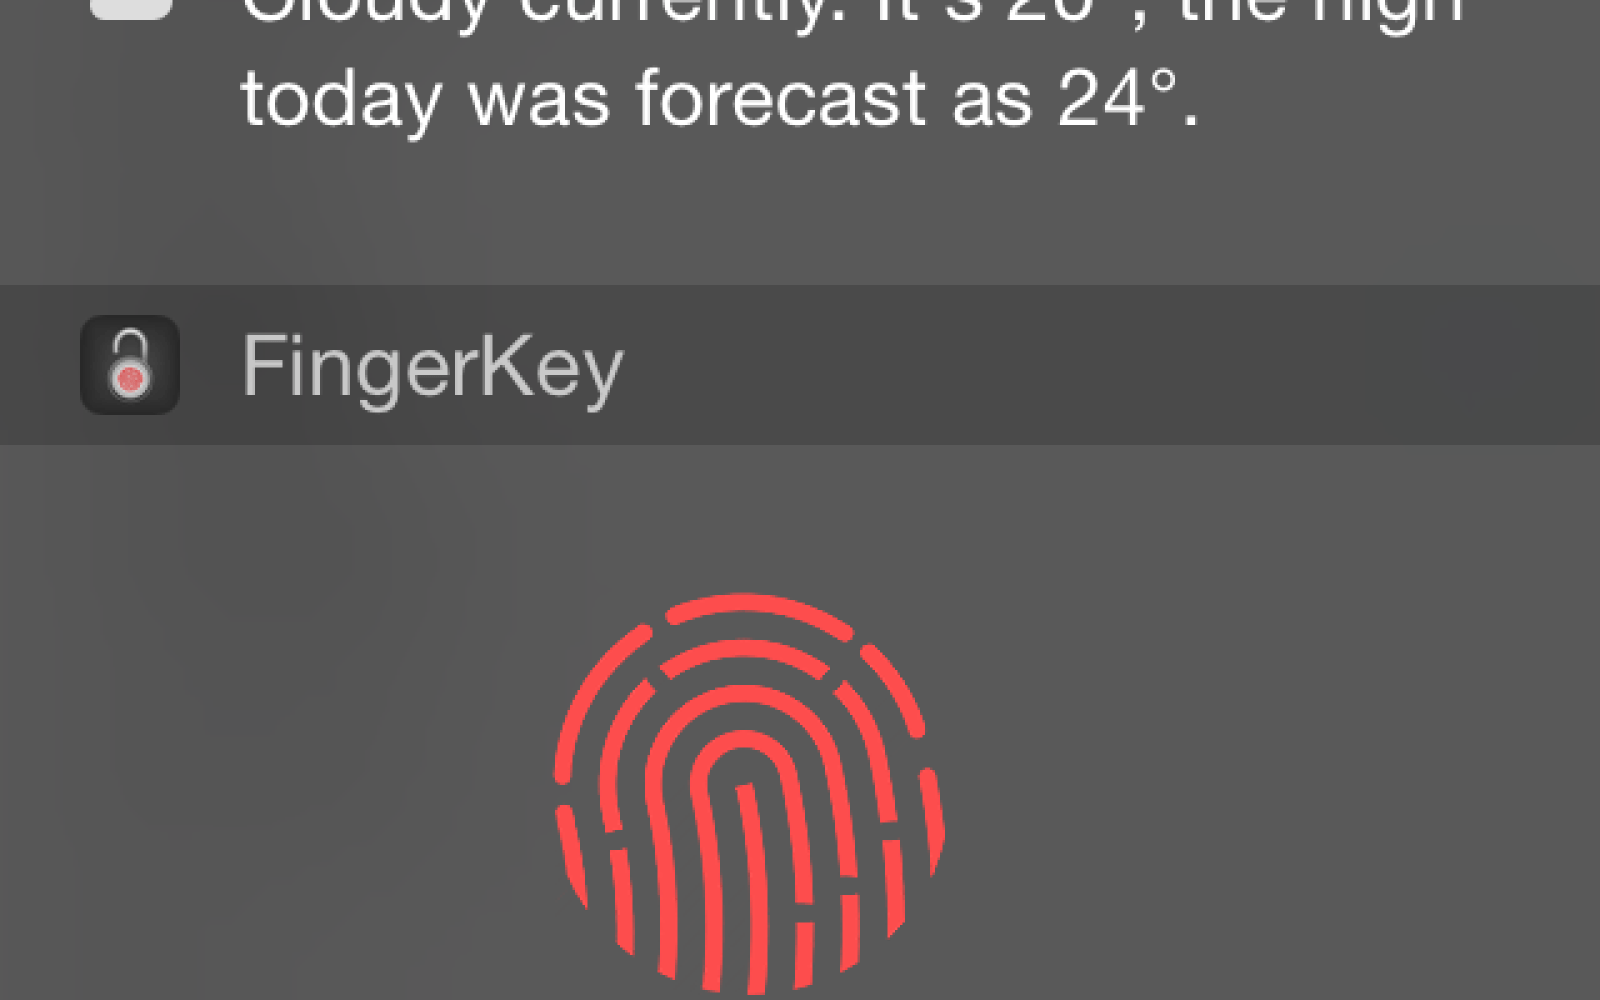 FingerKey app lets you unlock your Mac using iPhone's TouchID fingerprint sensor